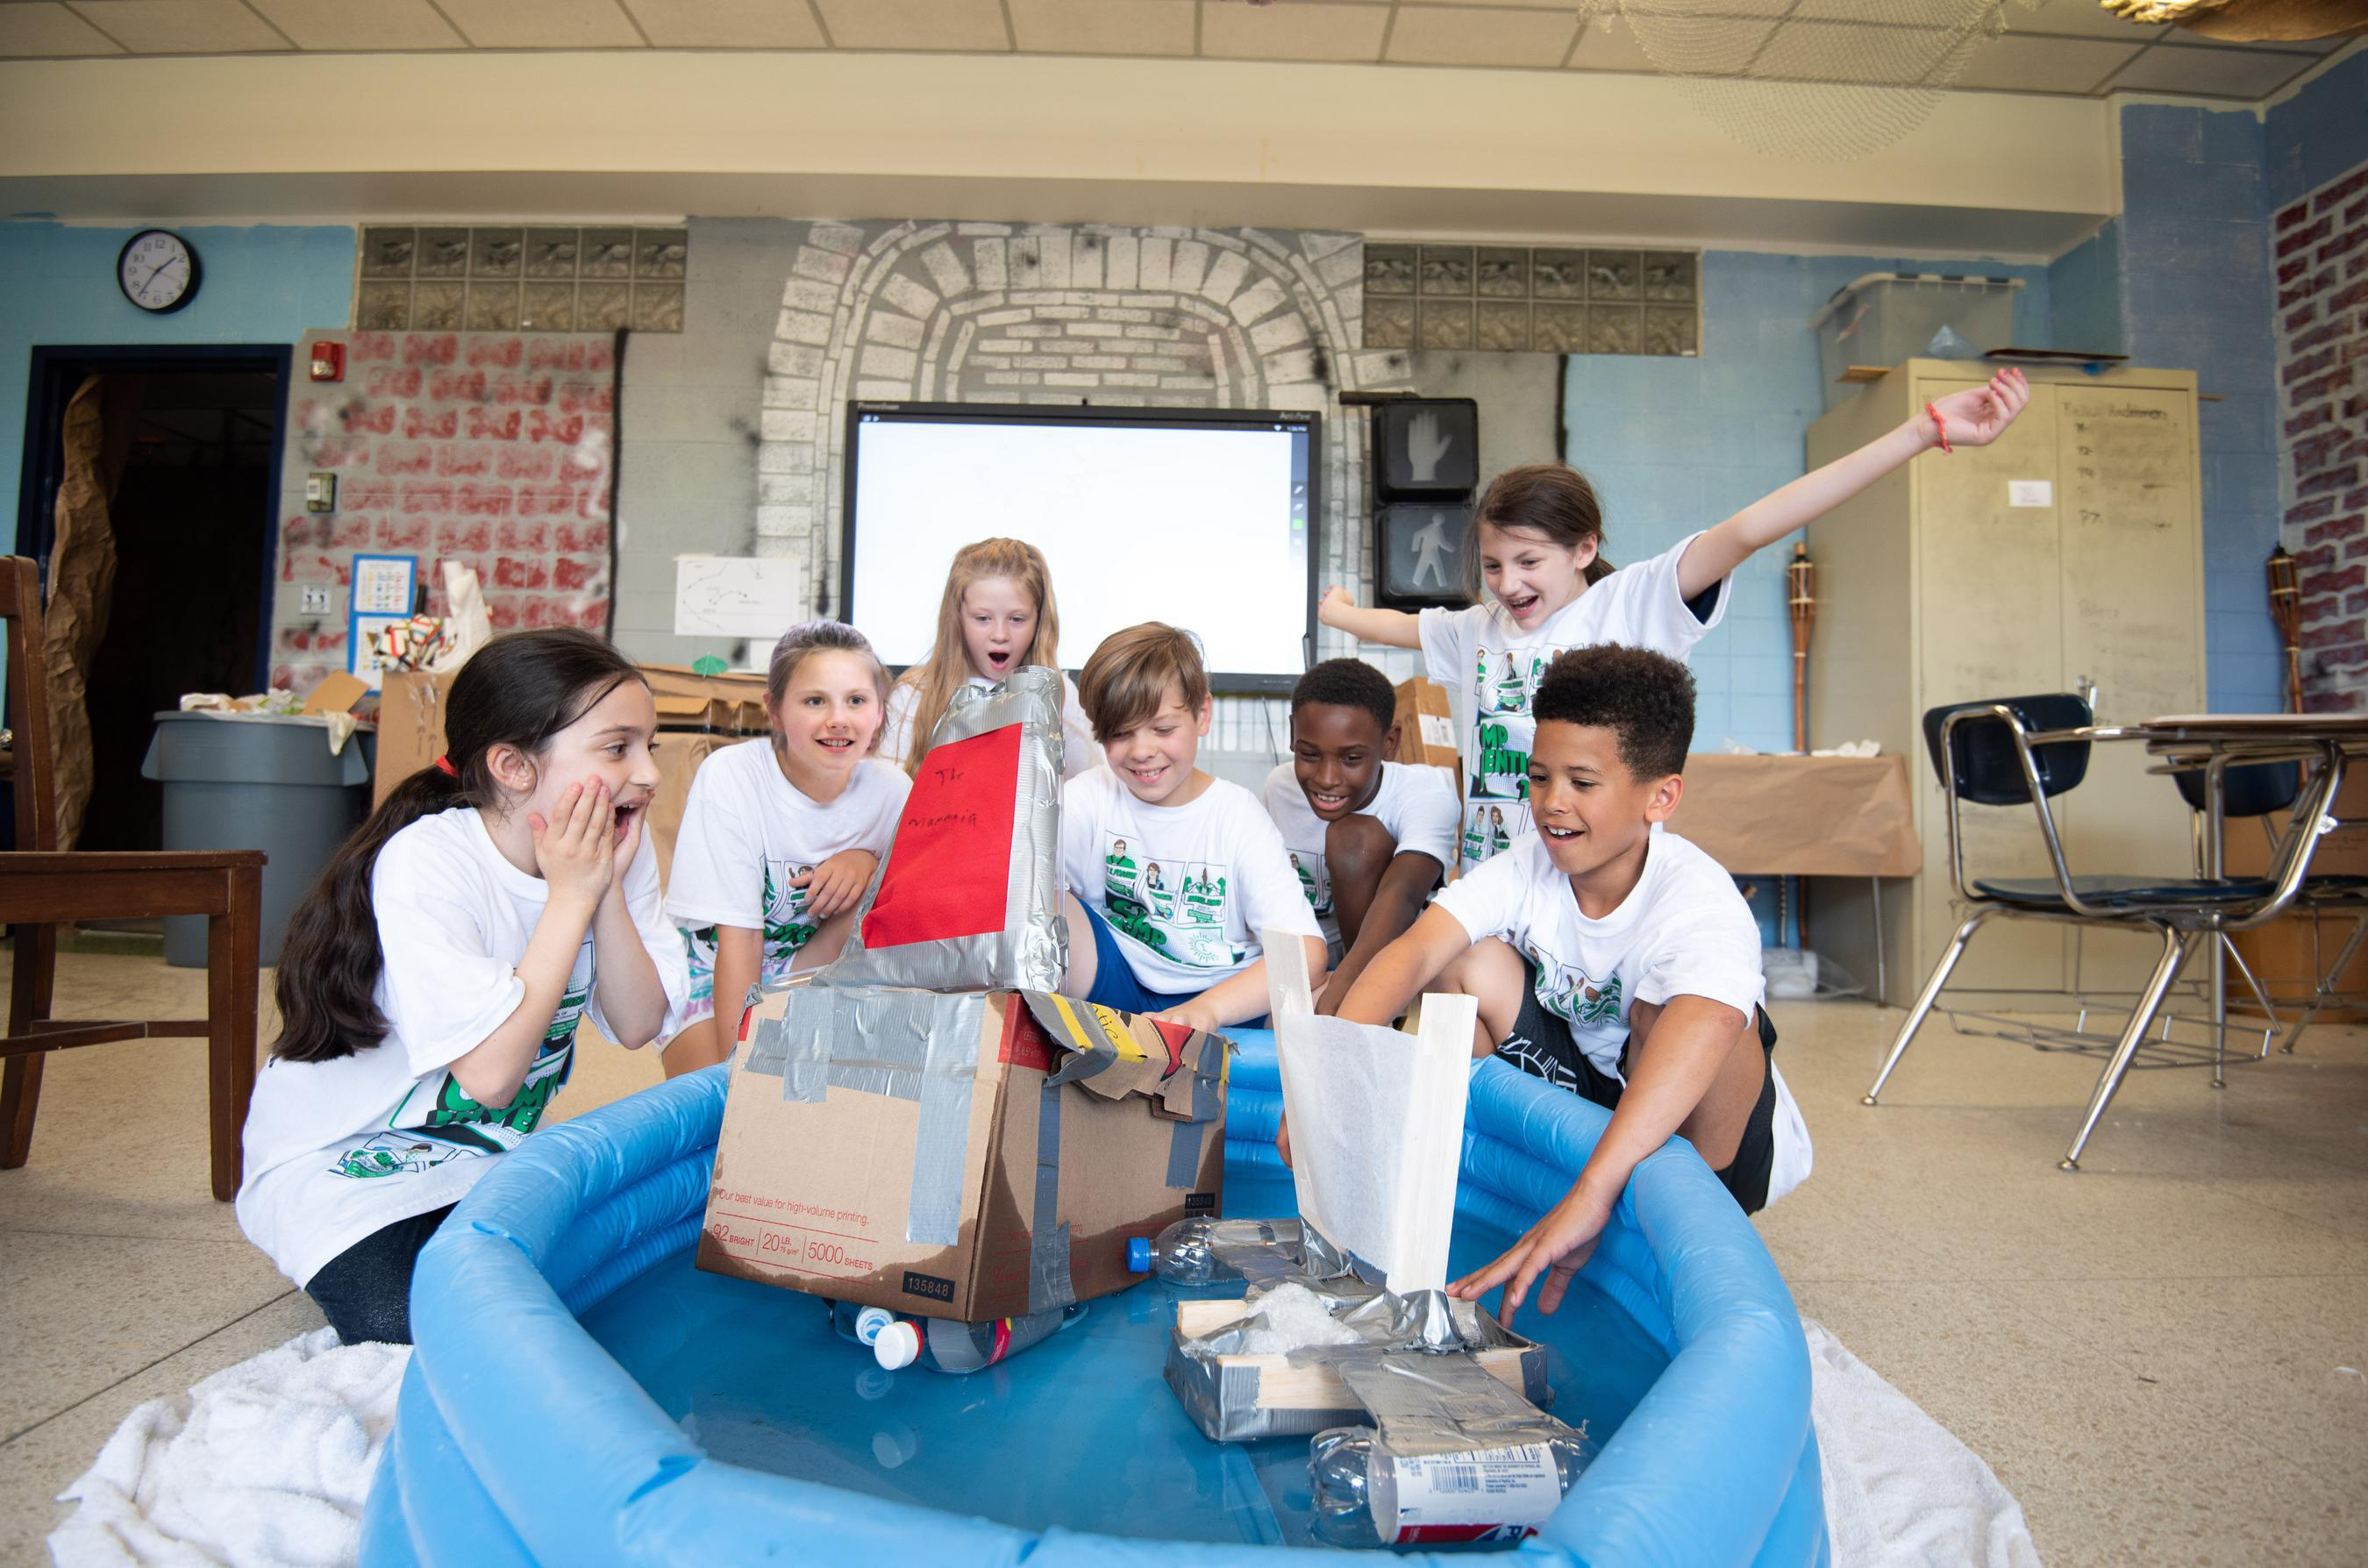 Campers will collaborate to rebuild ships, dig up fossils and design underwater equipment in fun, hands-on STEM activities.